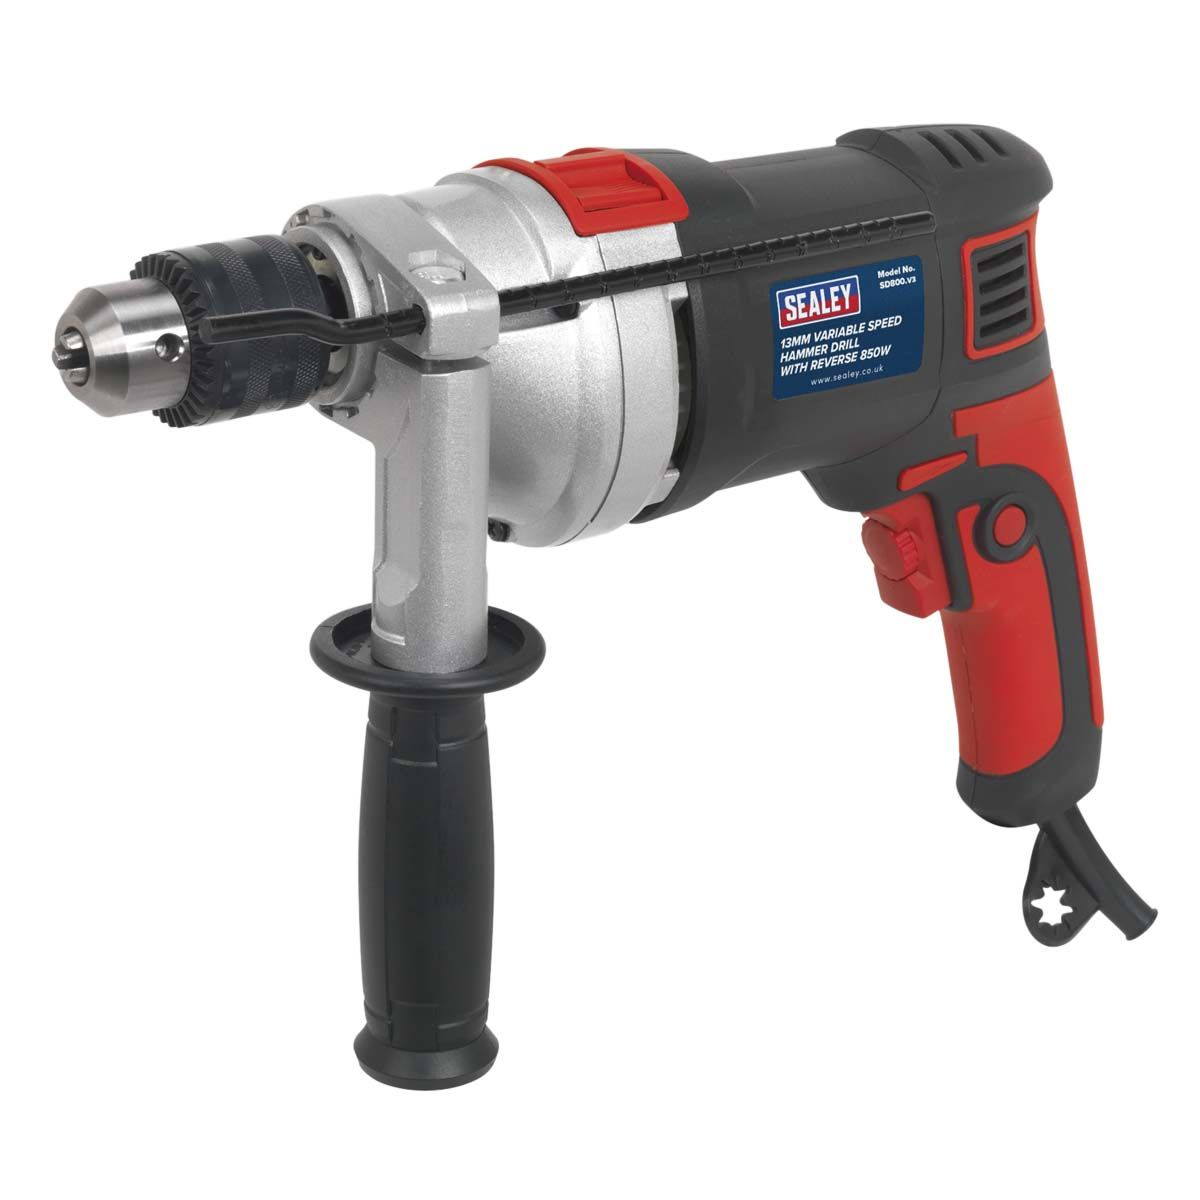 Sealey Hammer Drill 13mm Variable Speed with Reverse 850W/230V